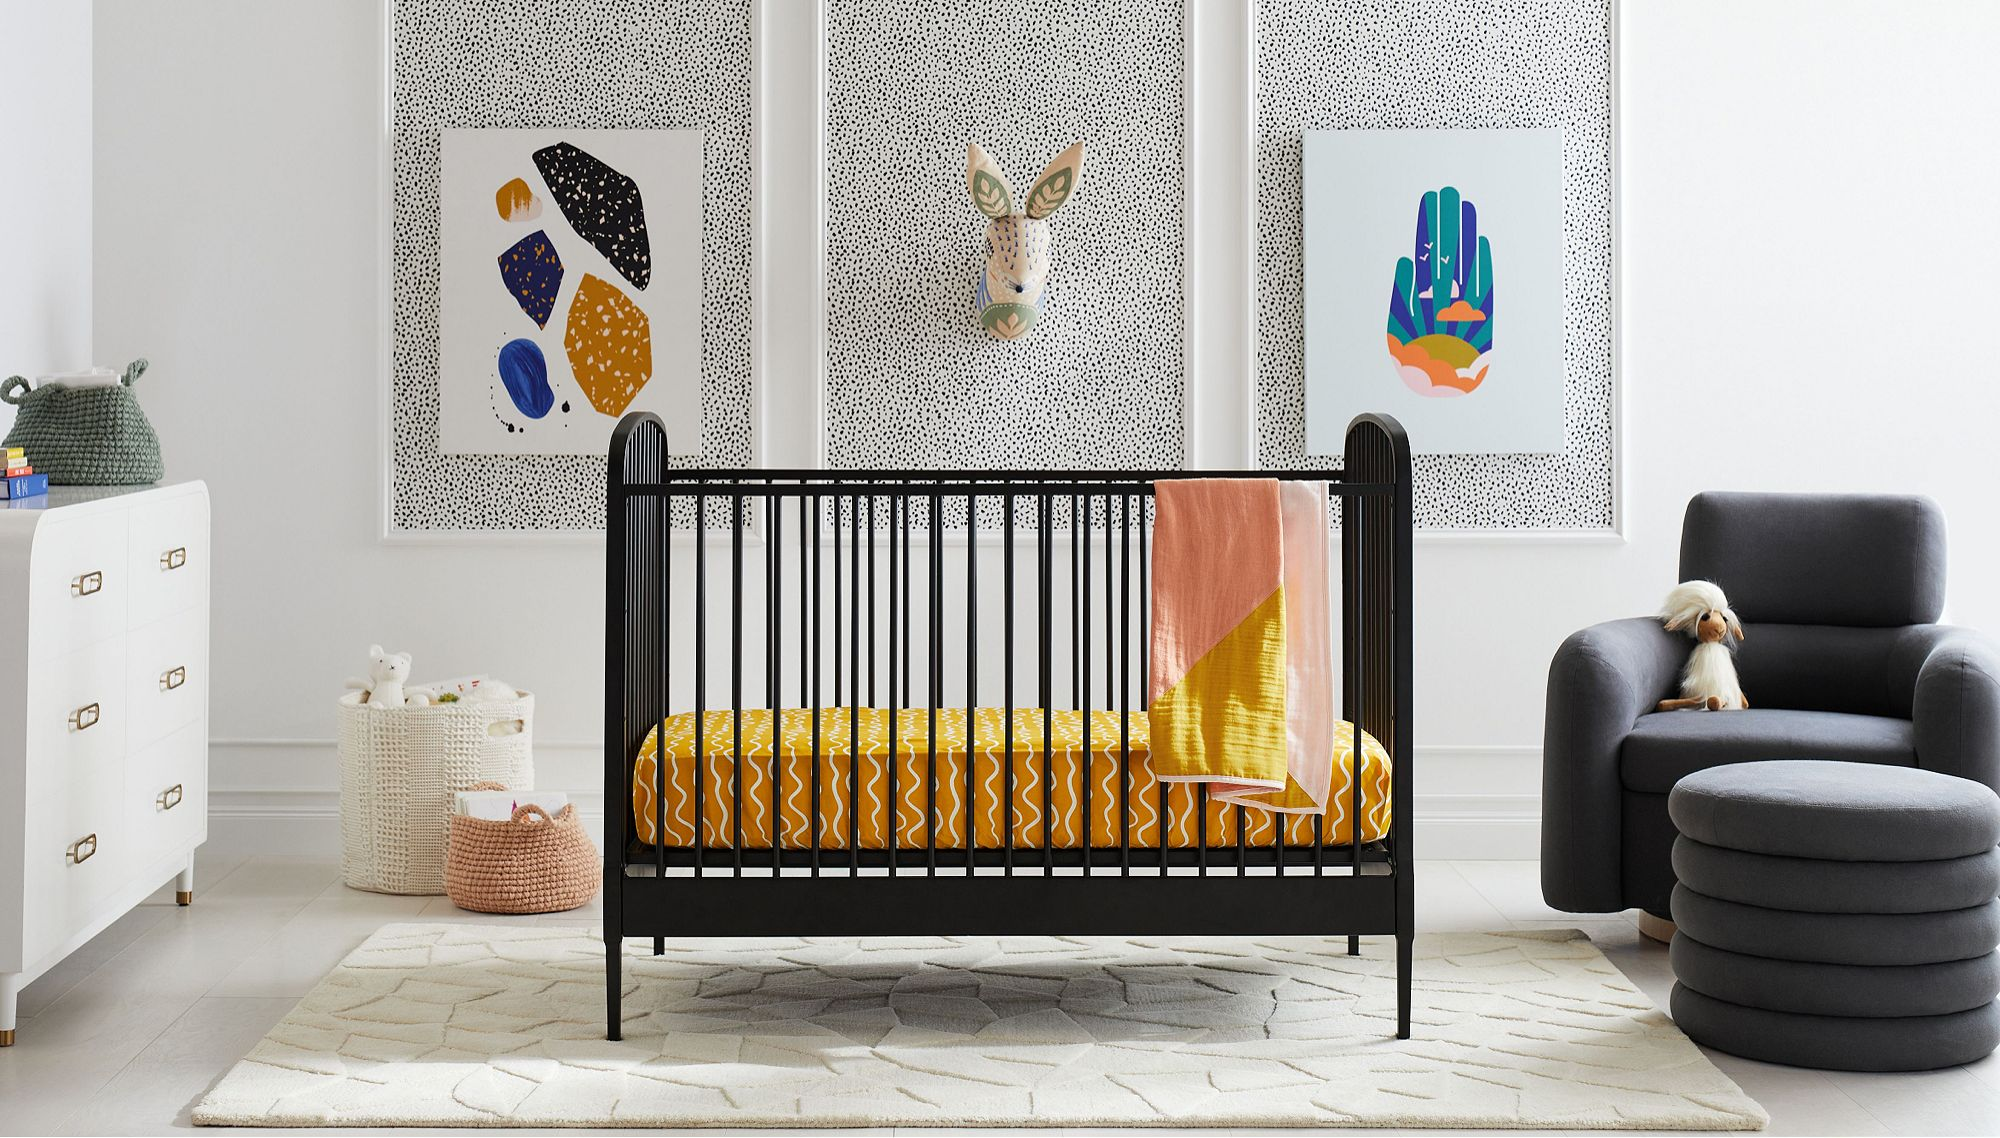 A nursery with a black crib with yellow bedding, surrounded by a white dresser, woven storage baskets and a dark grey chair